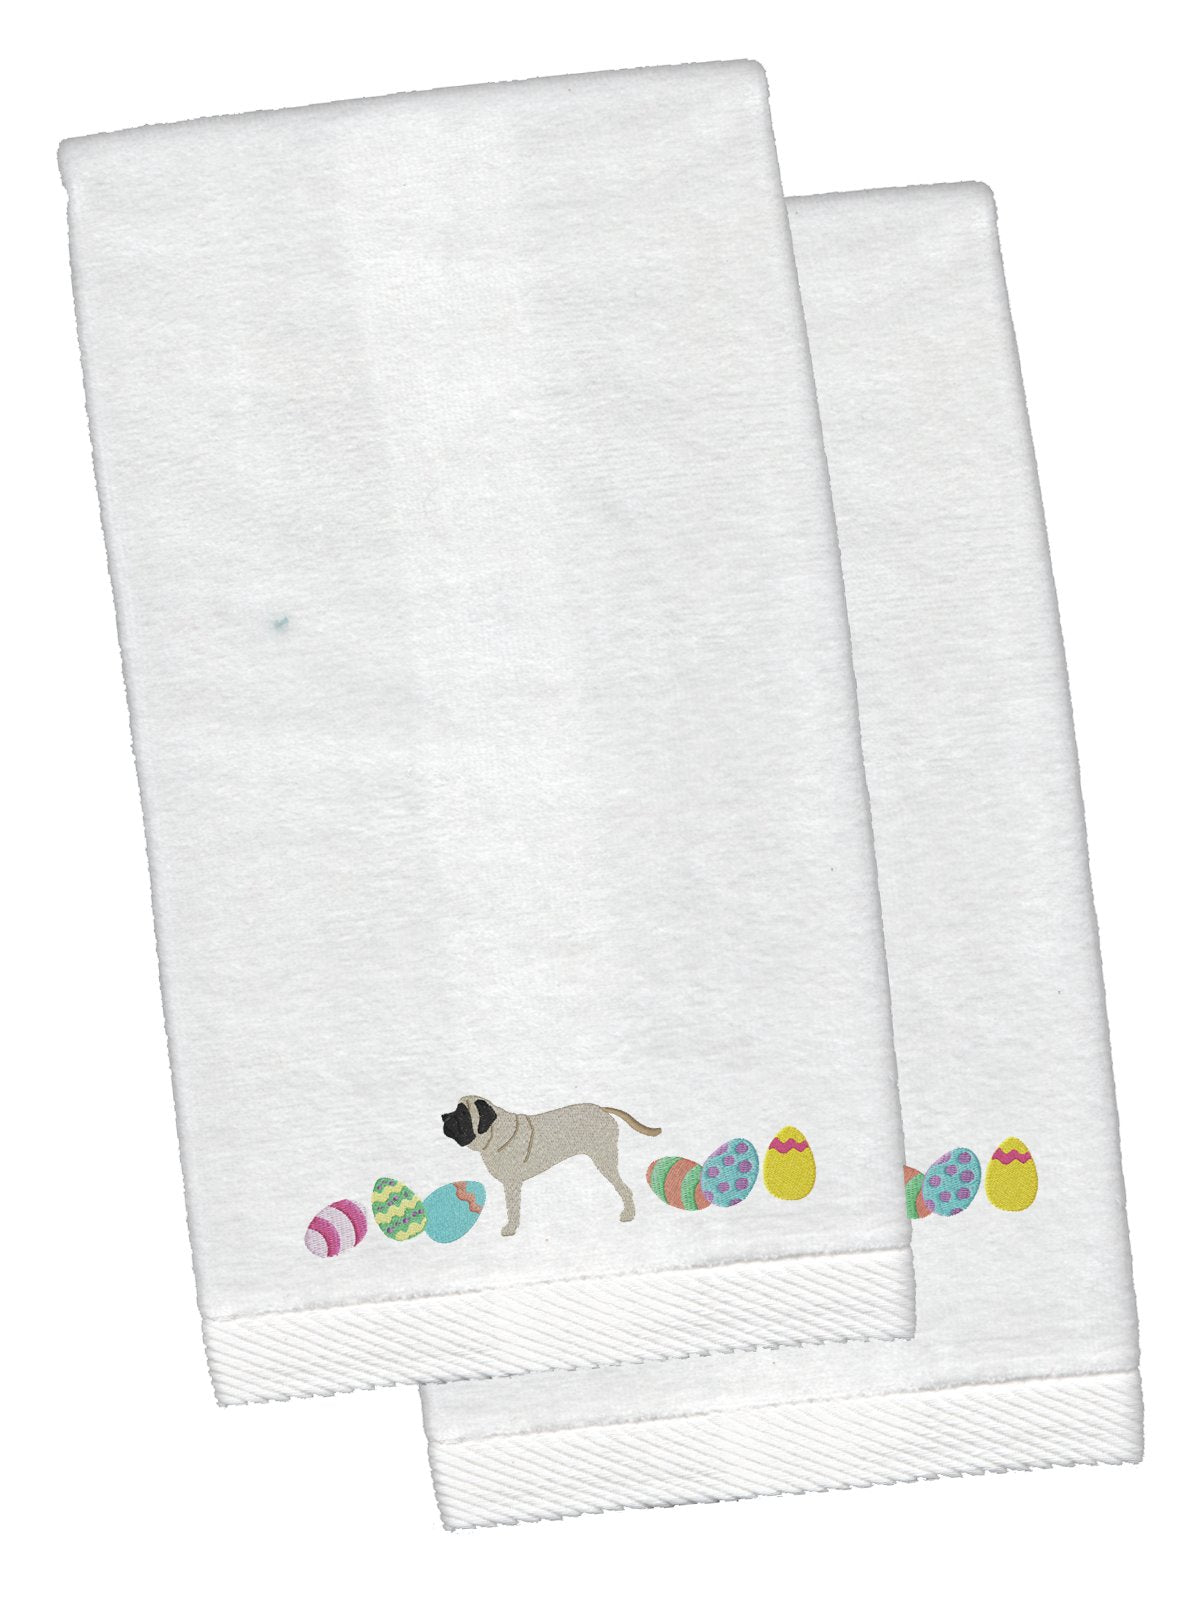 English Mastiff Easter White Embroidered Plush Hand Towel Set of 2 CK1638KTEMB by Caroline's Treasures